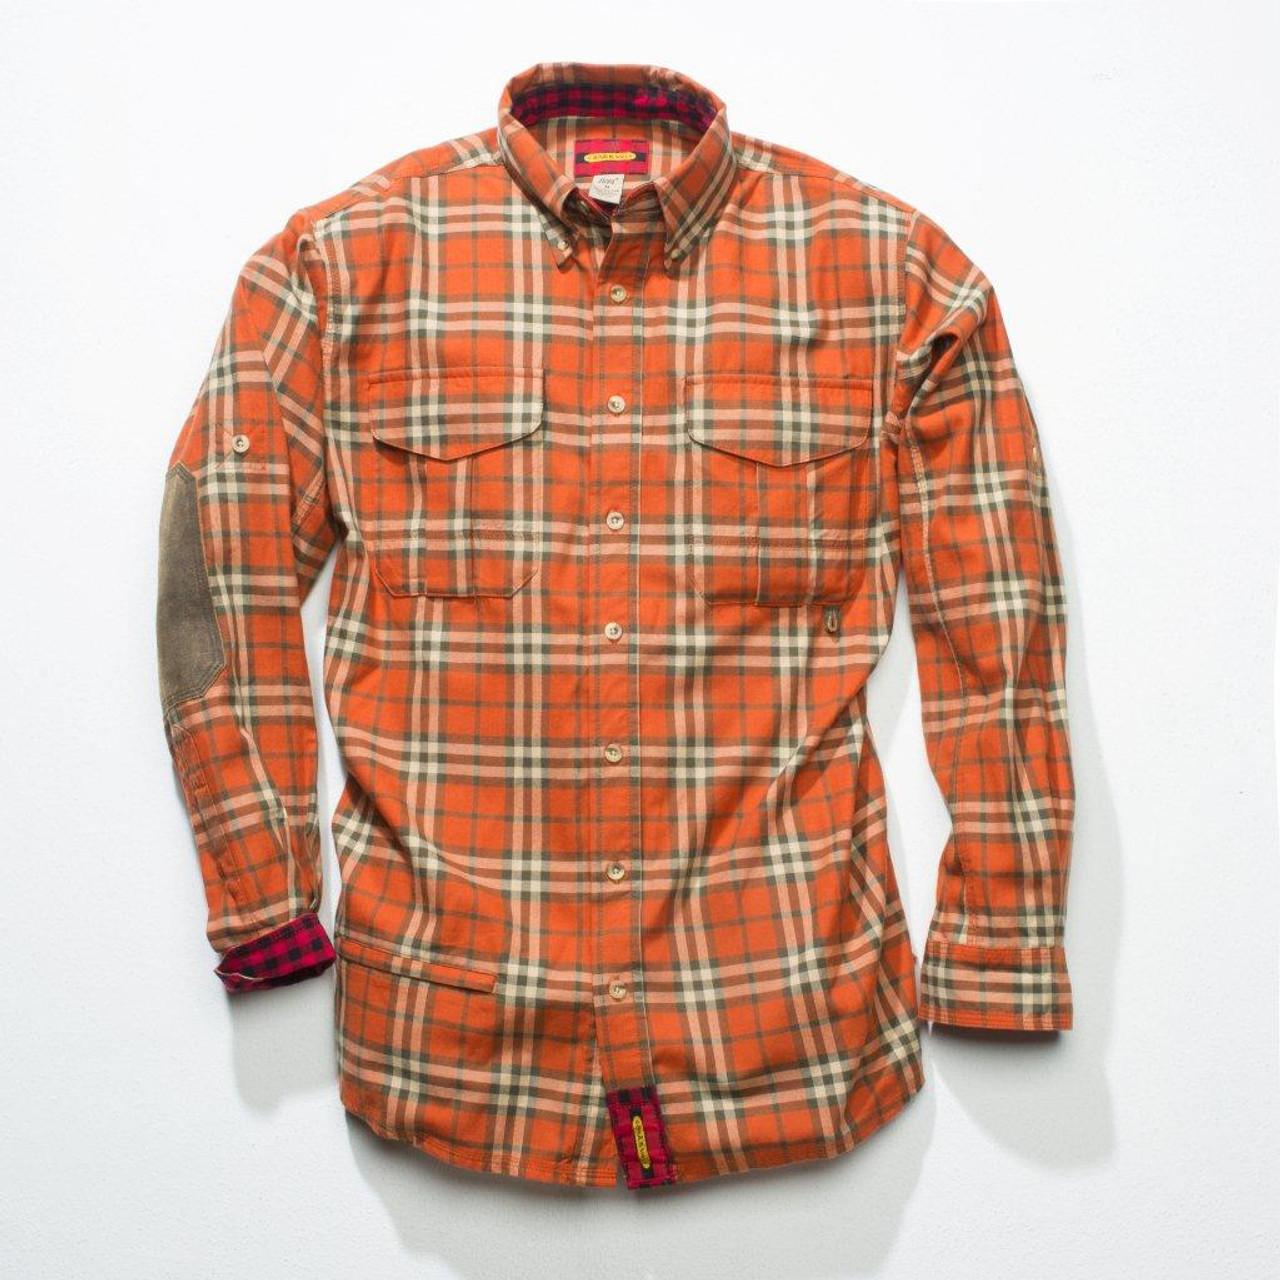 Paddock - Red Rock Rust Estate Plaid - 25% OFF